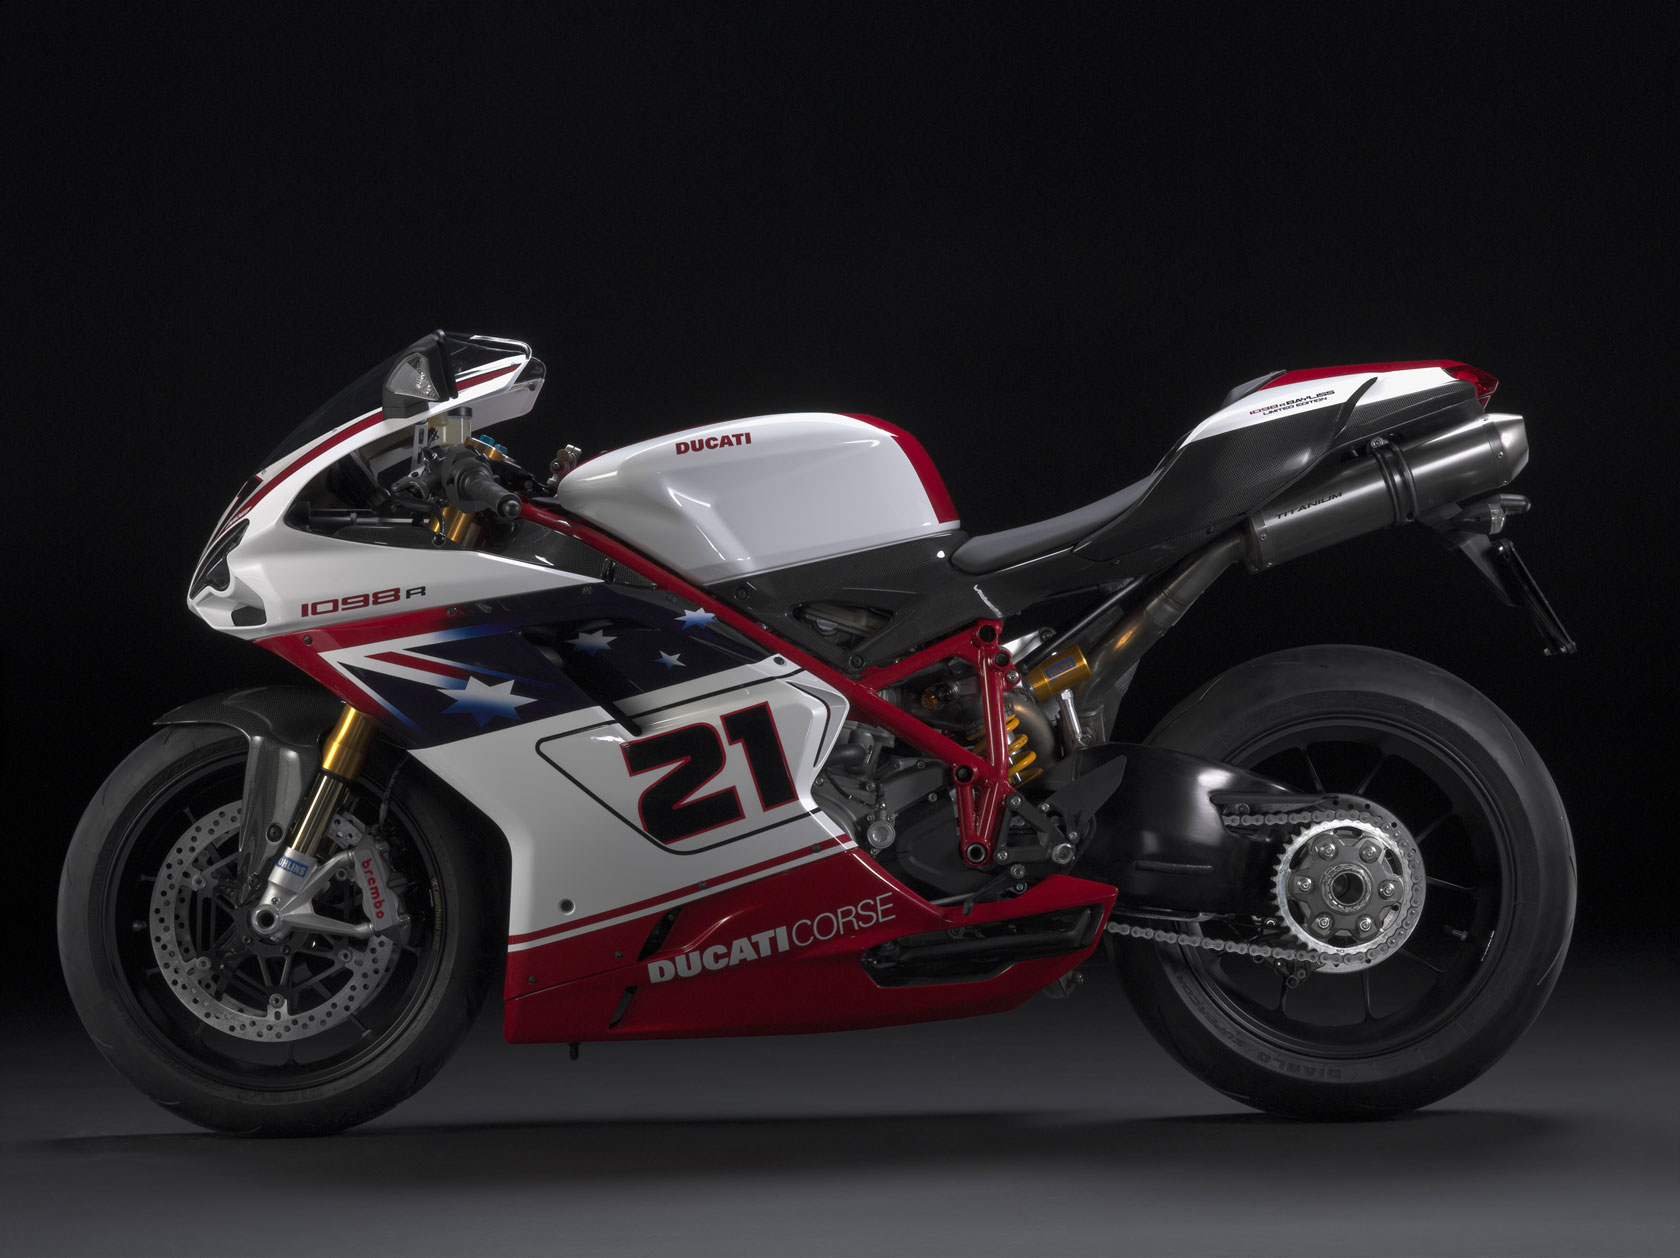 Ducati Superbike 1098 R Bayliss Limited Edition 2009 wallpapers #12439